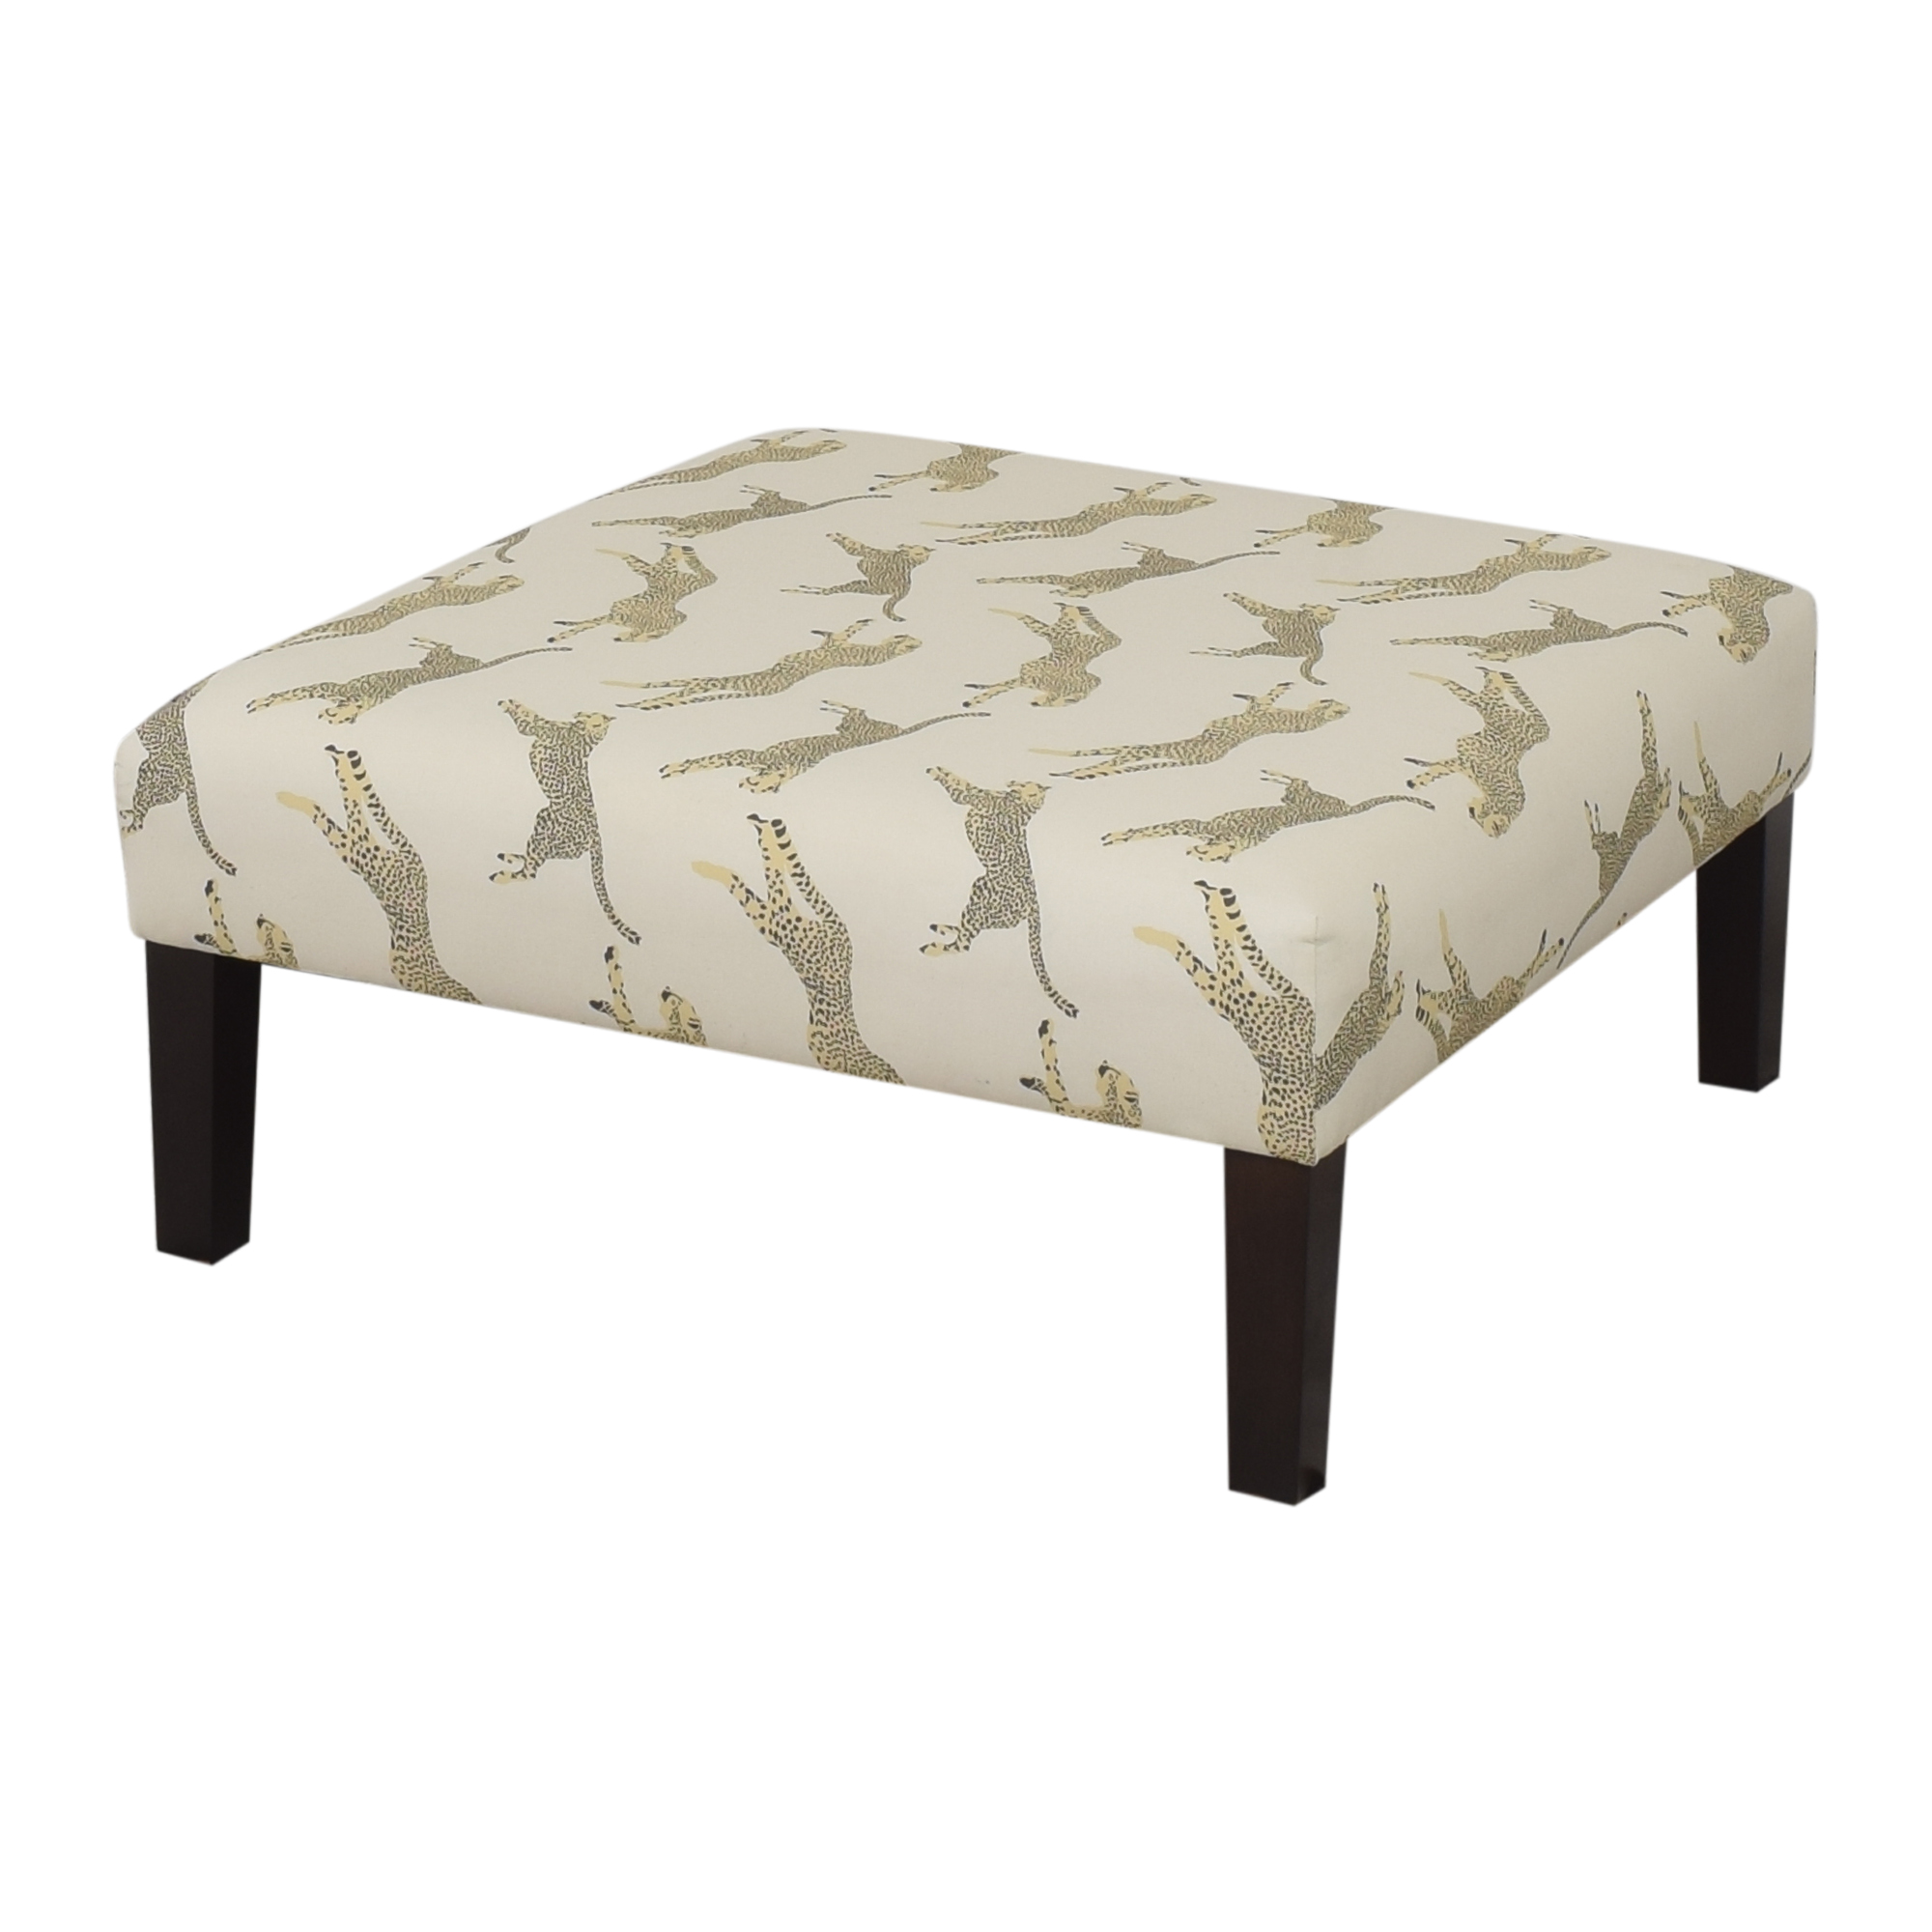 buy The Inside Cocktail Ottoman The Inside Ottomans